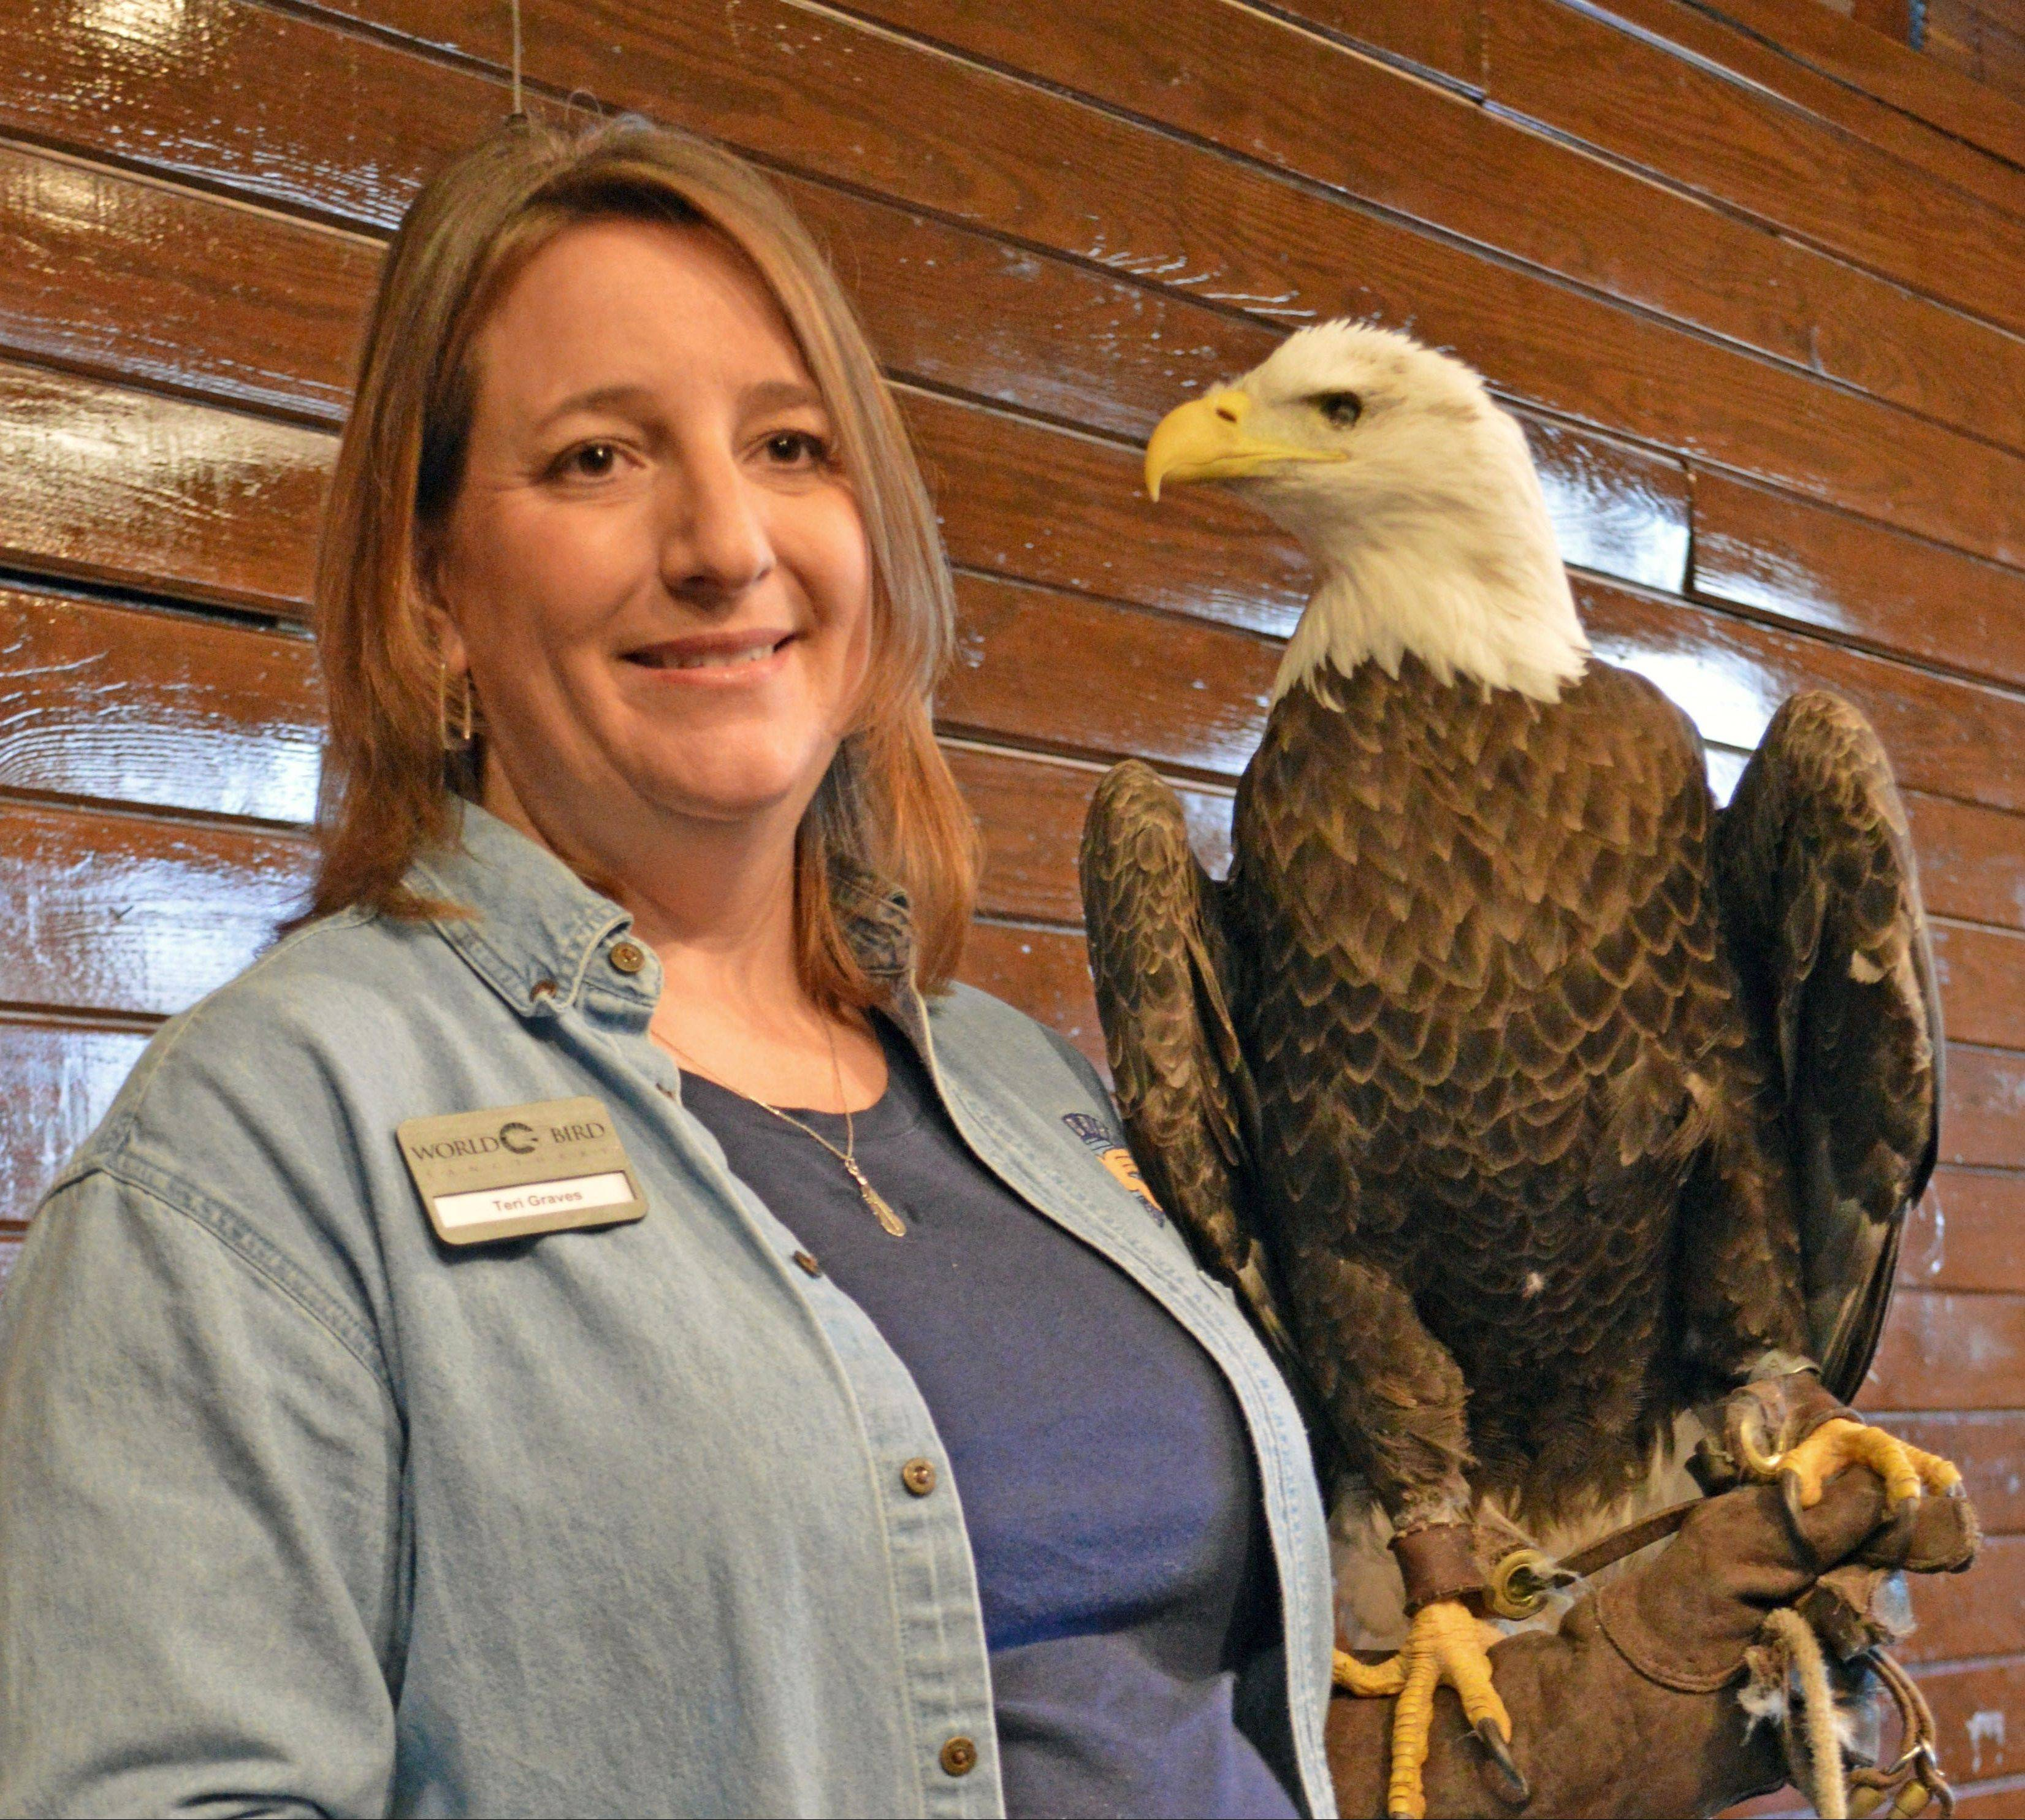 It's Eagle Watch Weekend Jan. 25-26 at Starved Rock State Park near Utica.